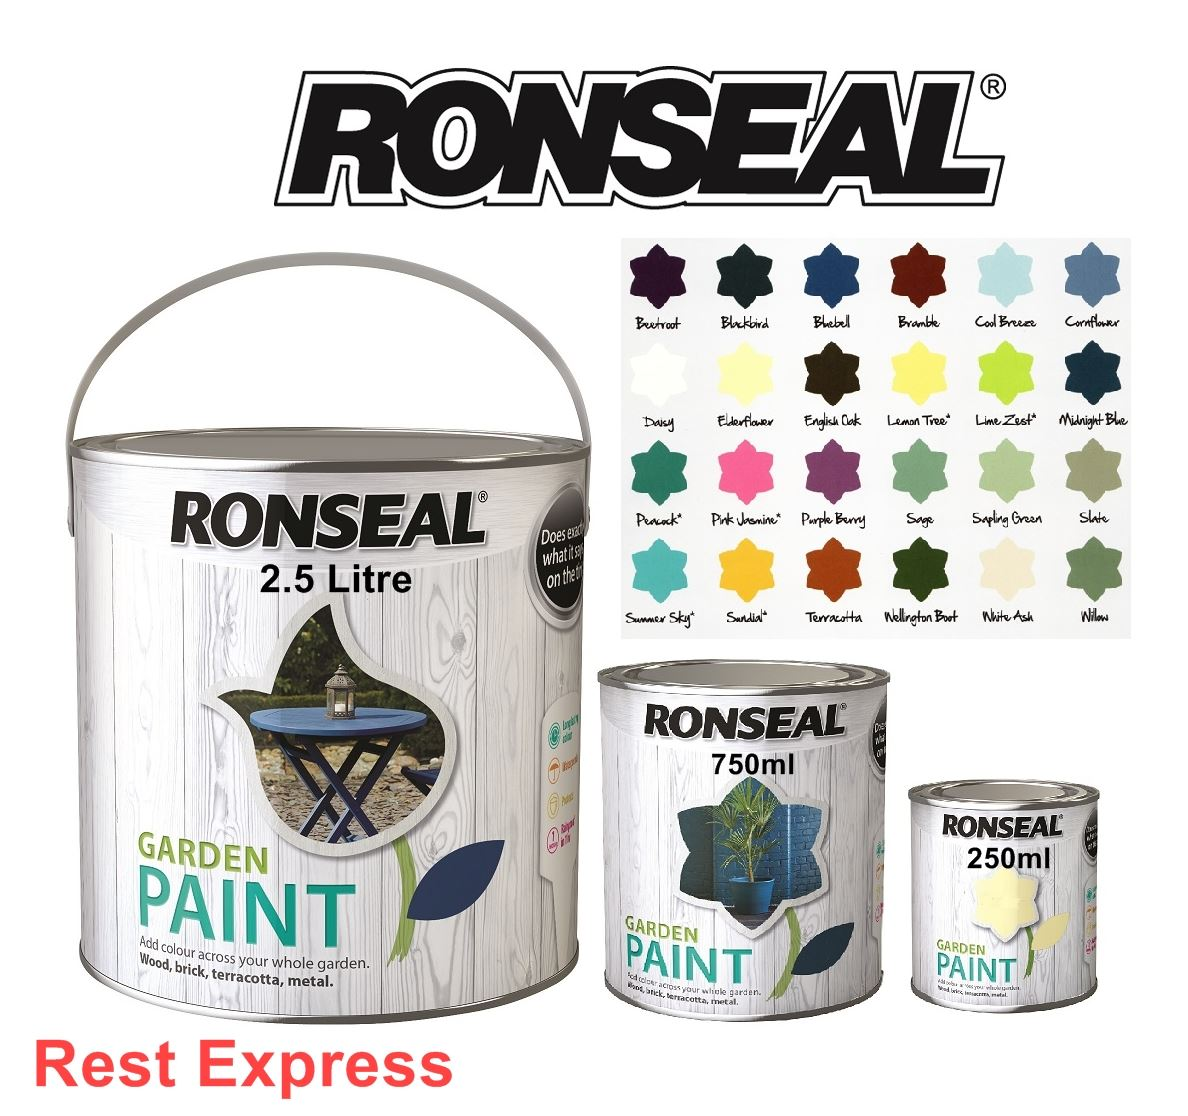 Scenic Ronseal Garden Paint For Wood Metal Brick Stone Amp  With Foxy Ronseal Garden Paint For Wood Metal Brick Stone  Terracotta  Shed   Fence With Alluring Marquess Of Anglesey Covent Garden Also Gym In Garden In Addition Chandigarh Rock Garden And London Hatton Garden As Well As Gifts For People Who Like Gardening Additionally Unusual Gifts For Gardeners From Ebaycouk With   Foxy Ronseal Garden Paint For Wood Metal Brick Stone Amp  With Alluring Ronseal Garden Paint For Wood Metal Brick Stone  Terracotta  Shed   Fence And Scenic Marquess Of Anglesey Covent Garden Also Gym In Garden In Addition Chandigarh Rock Garden From Ebaycouk